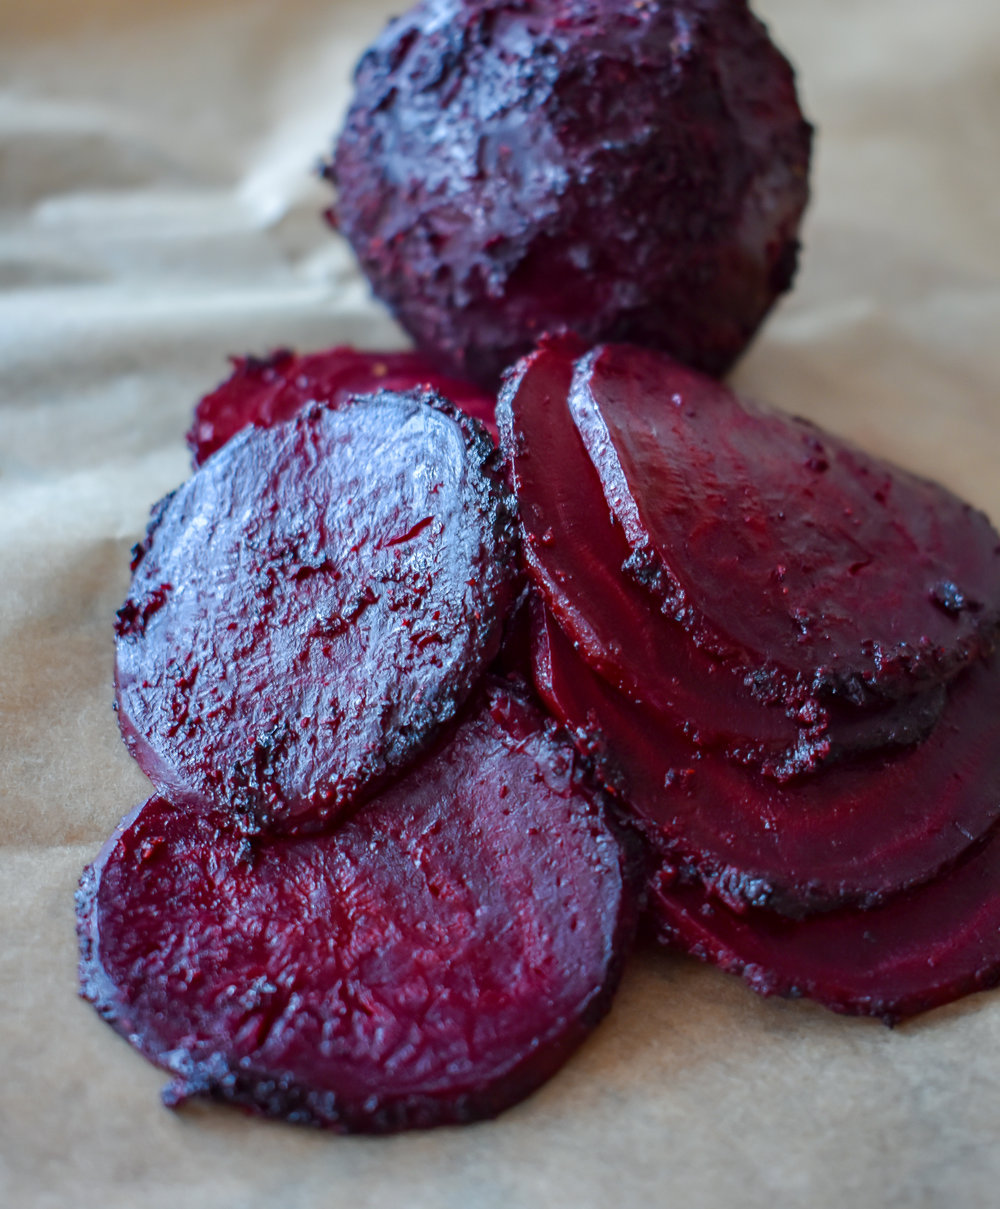 9. Using a mandolin or sharp knife, slice the beets to a 1/8 - 1/4 inch thick. This will create a very thin soft almost meat like beet round.